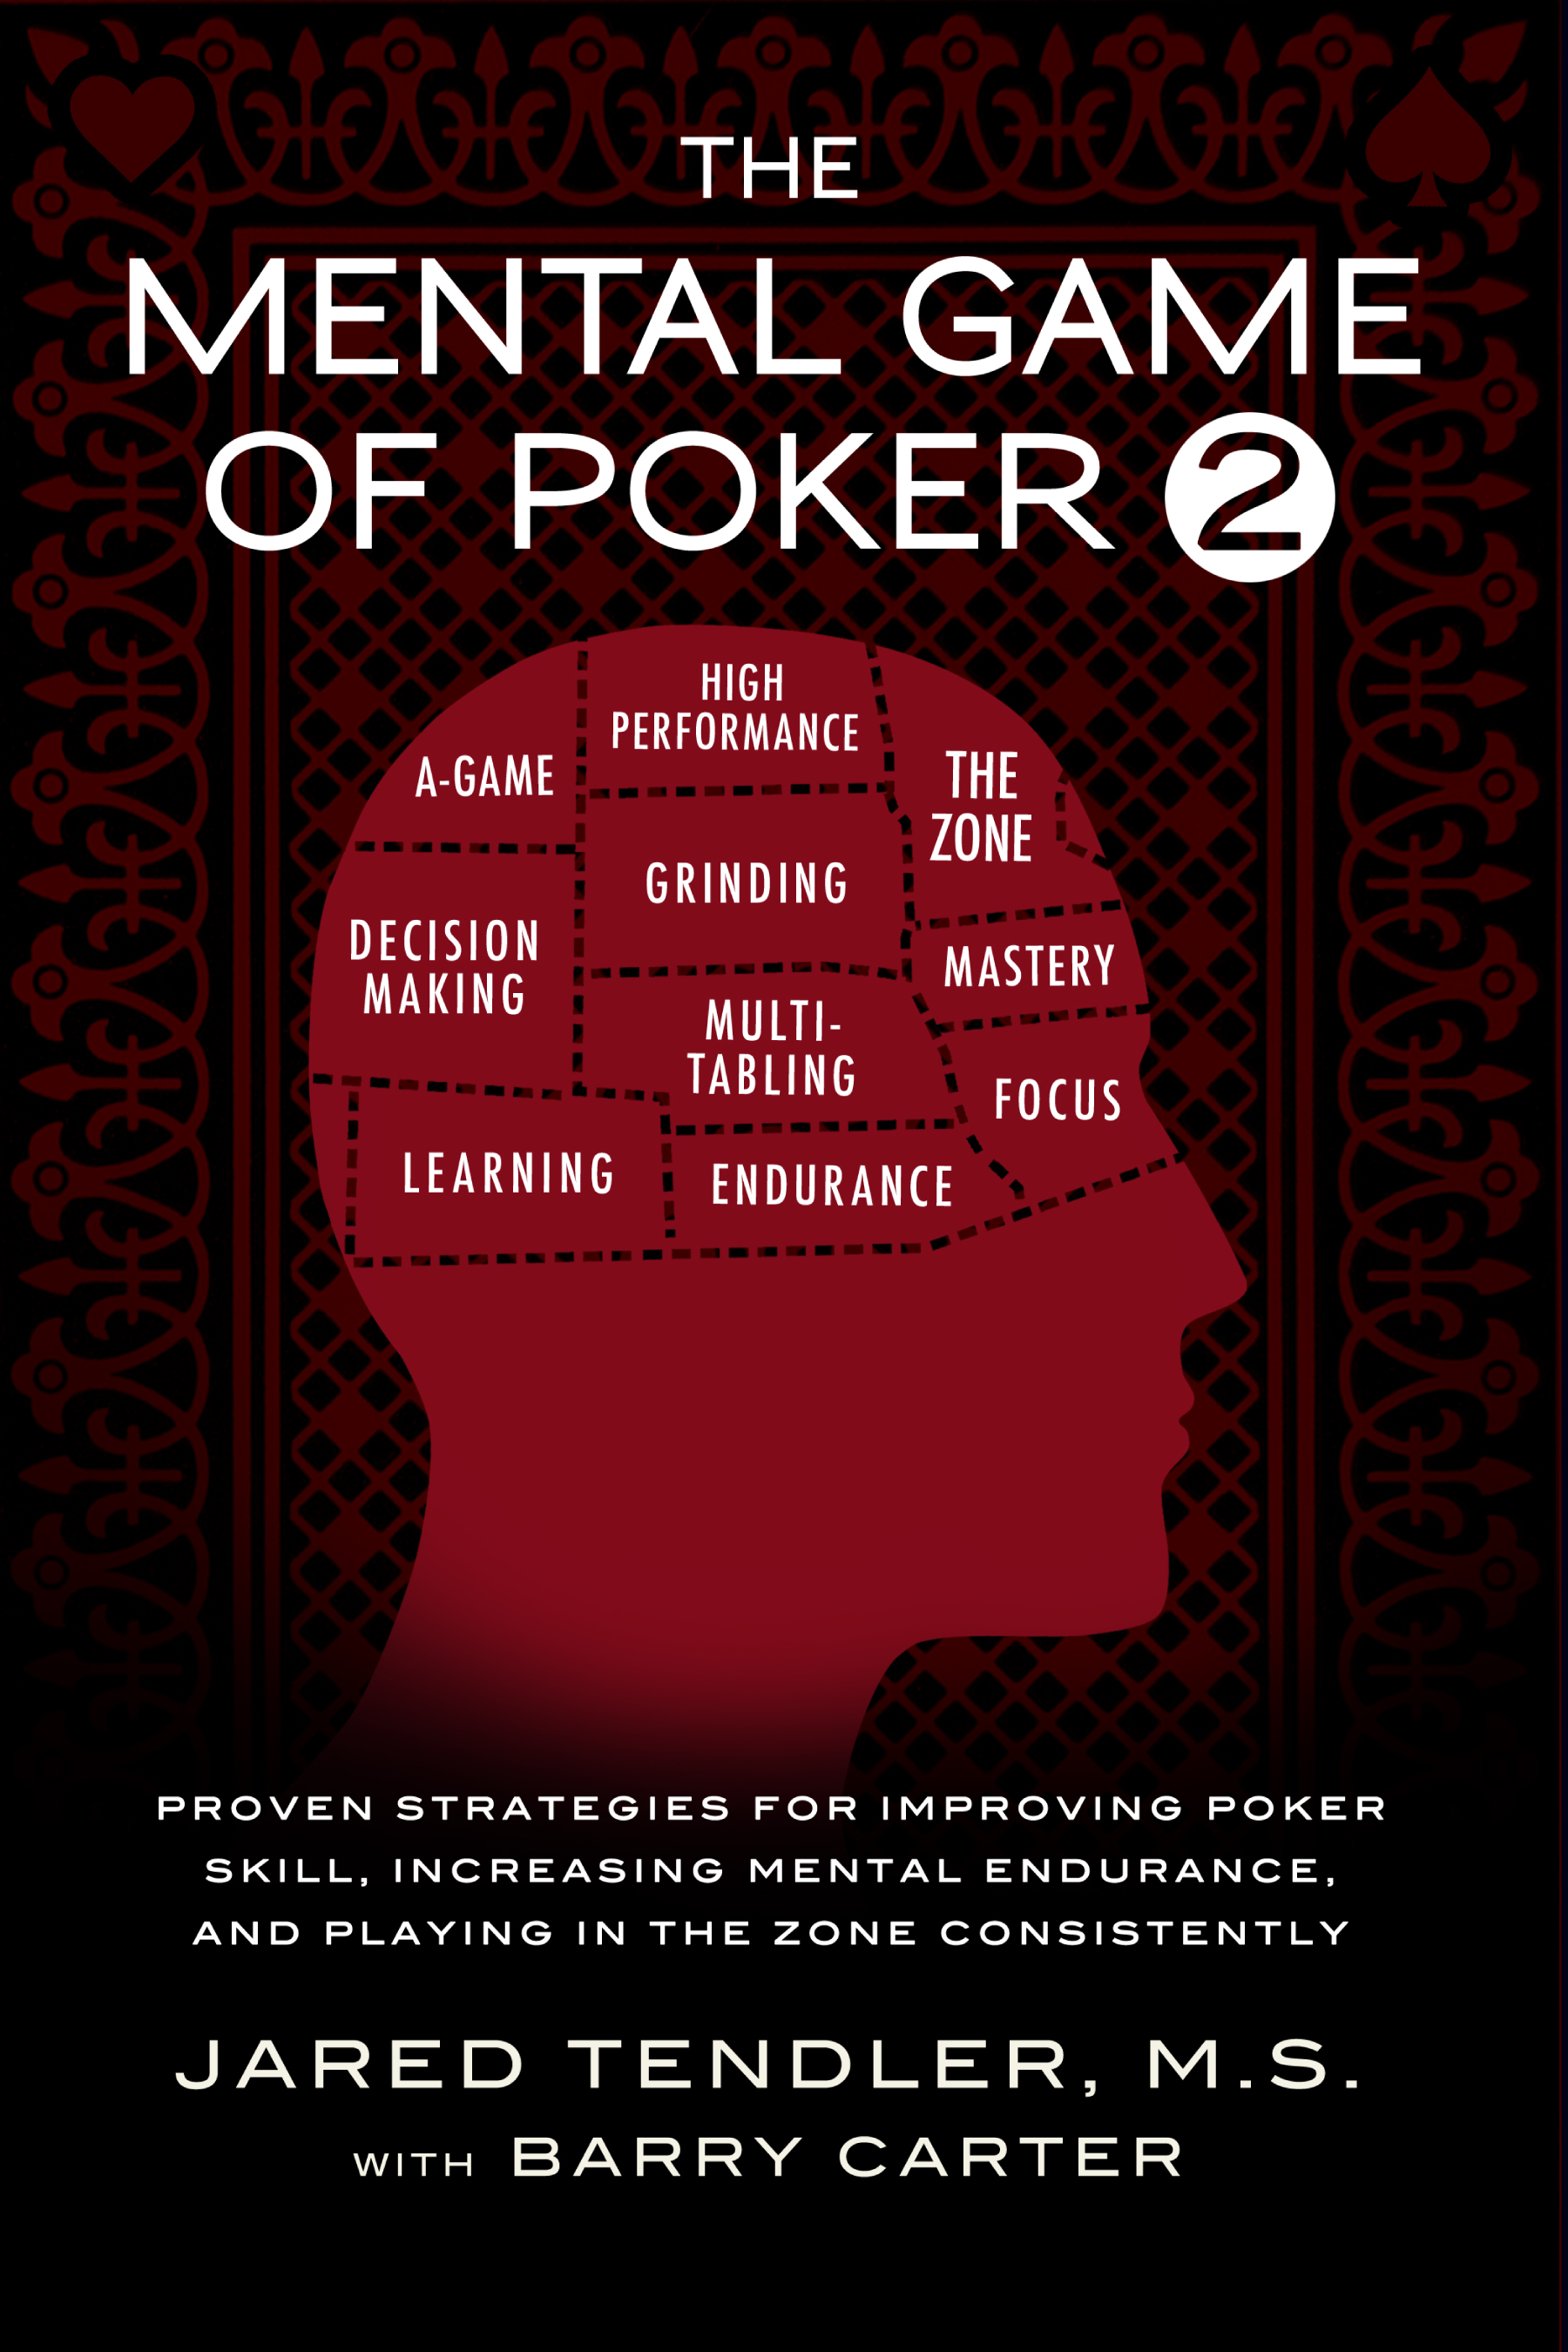 The mental game of poker 2 Jared Tendler